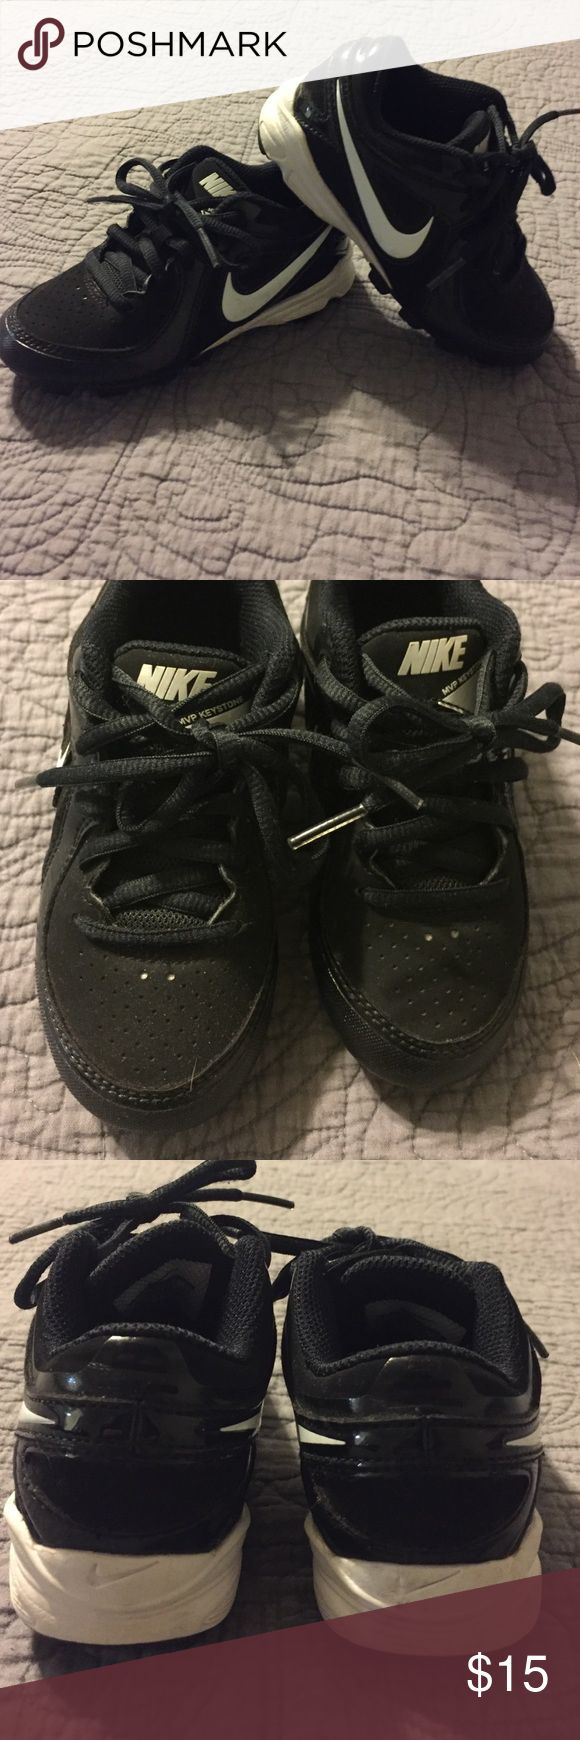 Toddler Nike baseball football cleats size 10 Nike toddler baseball or football cleats in great condition. Show no signs of wear except for a little clay staining on the soles. Don't forget, Nike fit a little snug so these are probably more suitable for a size 9/9 1/2 although they're marked as size 10. Nike Shoes